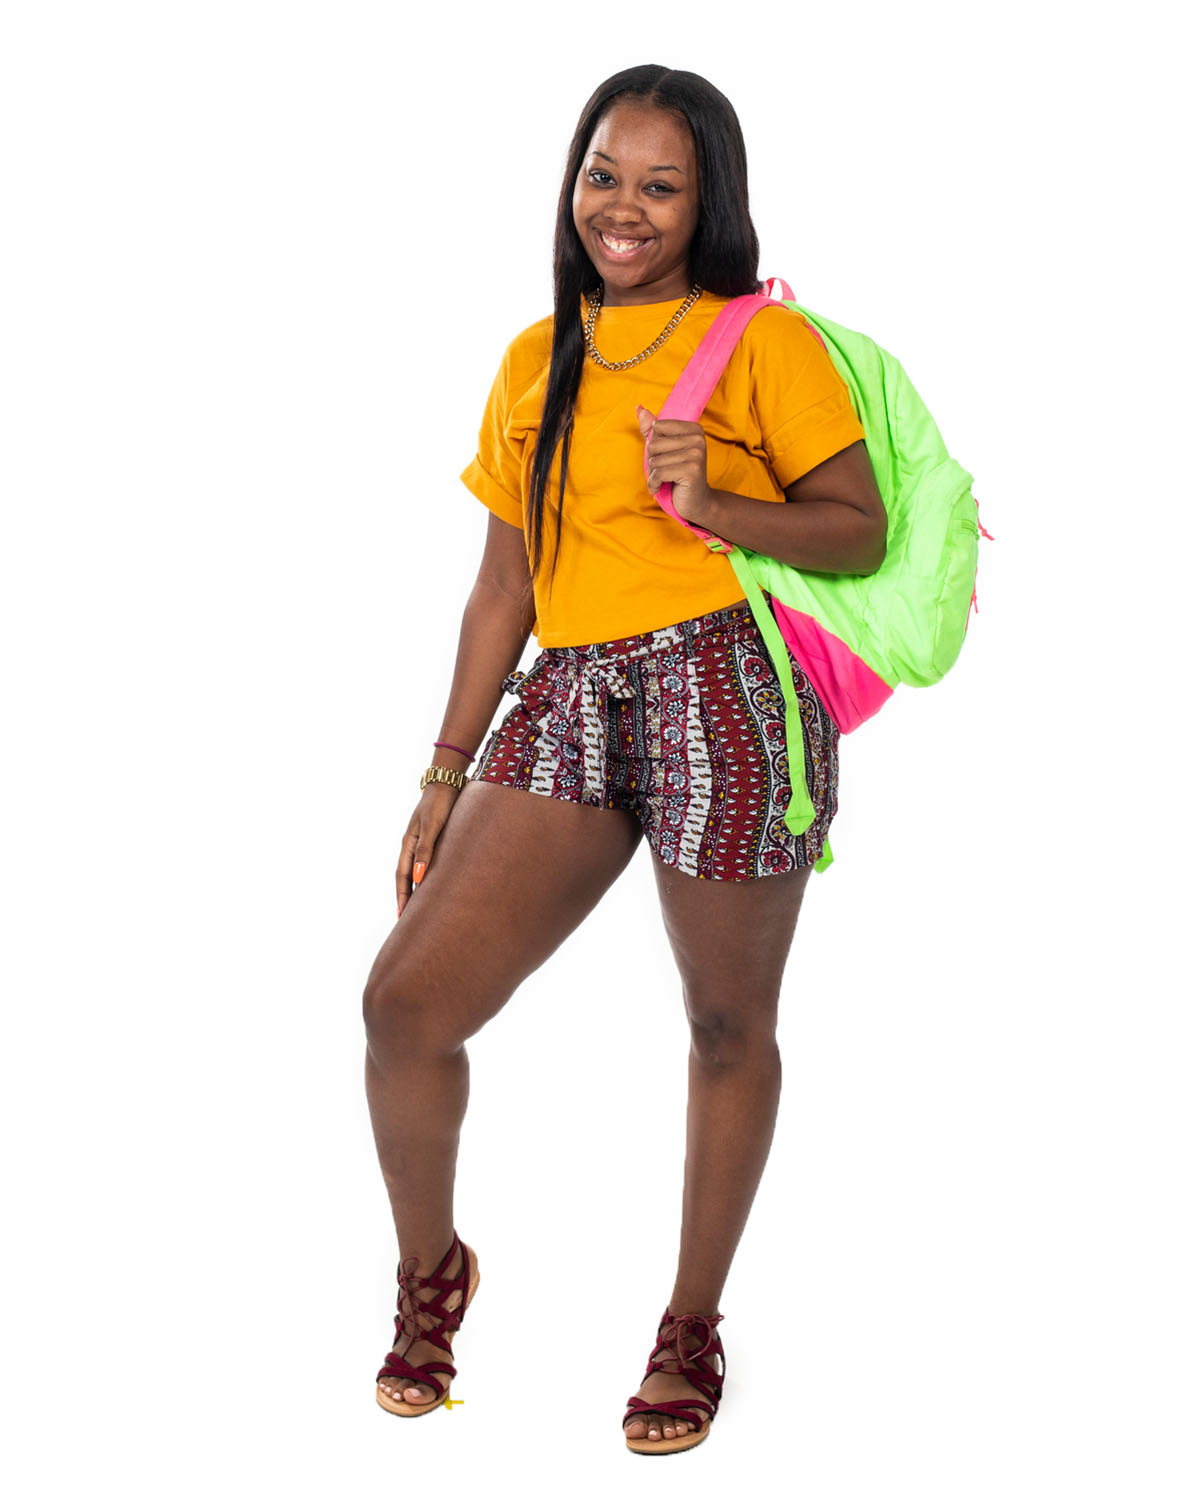 A woman in a yellow shirt and patterned shorts smiles as she wears a bright green backpack.